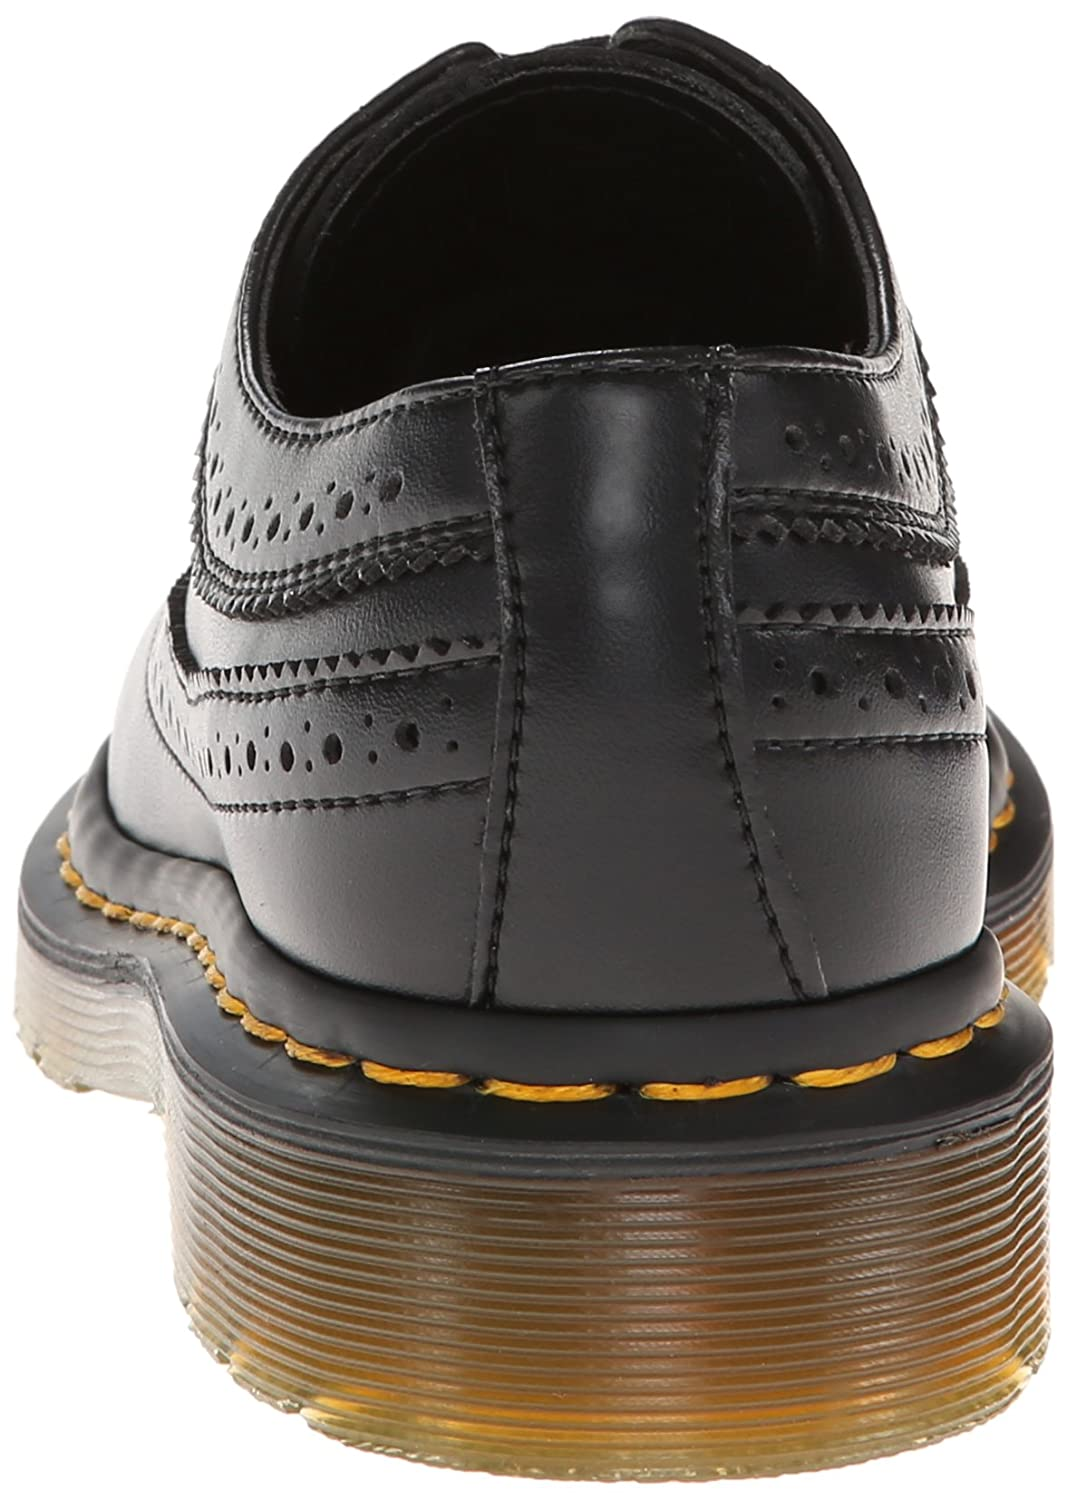 3989 Felix Rub Off Black, Richelieu Femme - Noir (Black), 38 EUDr. Martens